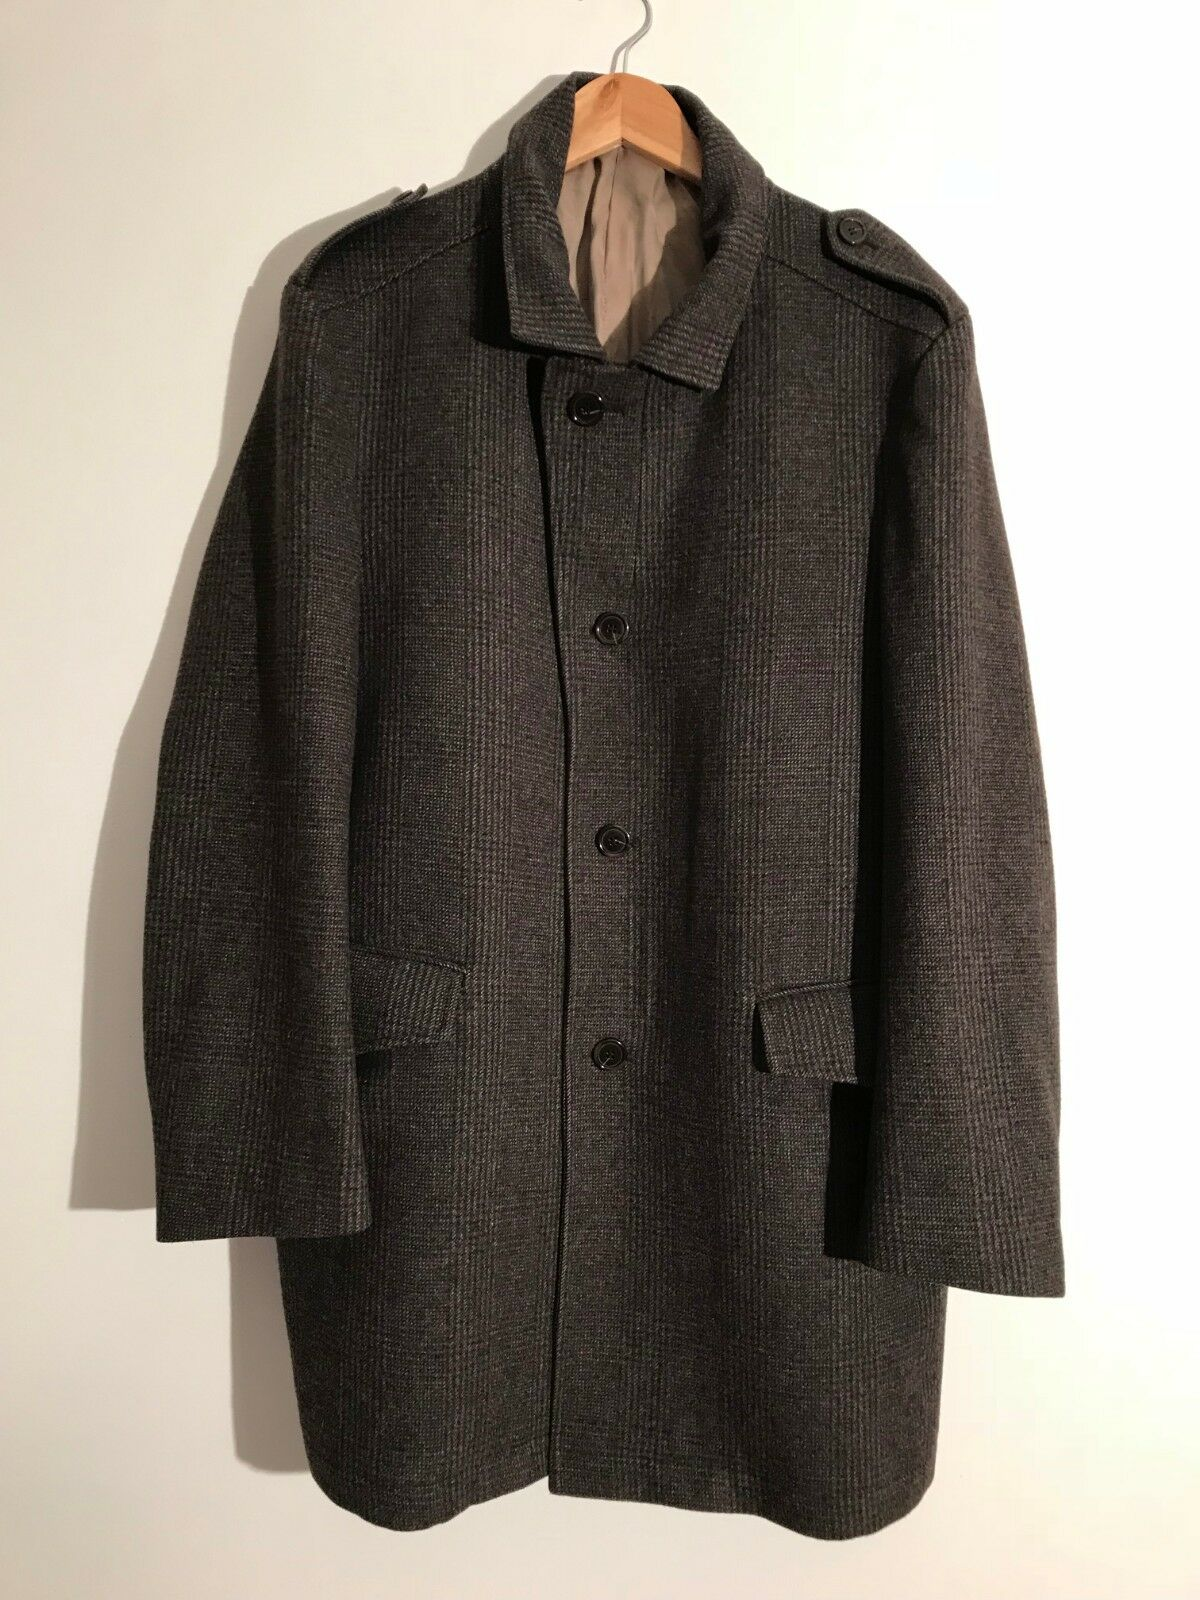 MARKS & SPENCER COLLEZIONE wool blend charcoal & dark brown tweed coat Large